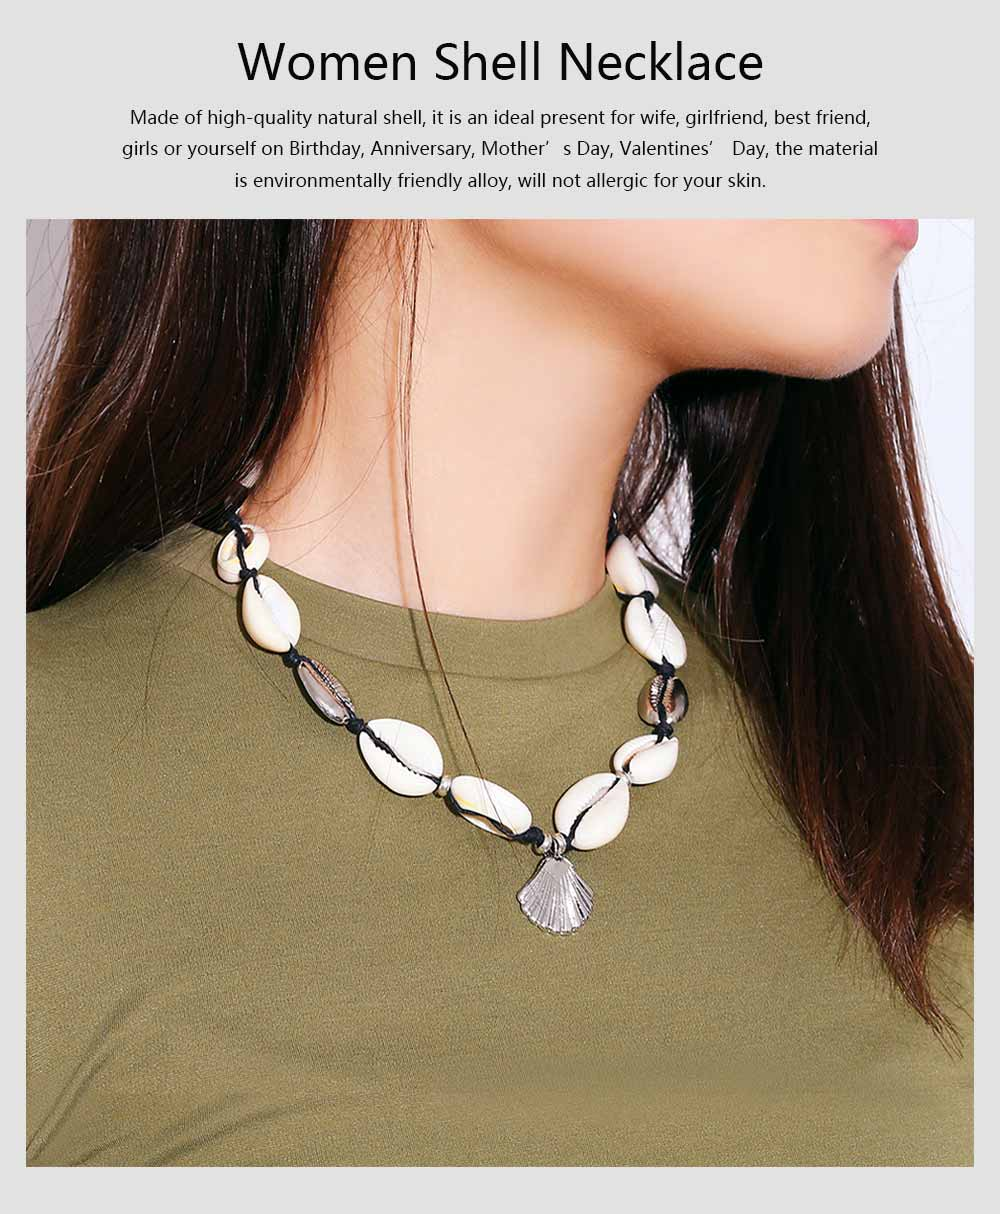 Handmade Shell Necklace Clavicle Chain for Women, Natural Shell Necklace Bracelet Cowrie Choker Collarbone Chain, Adjustable Trible Charms Jewelry 0